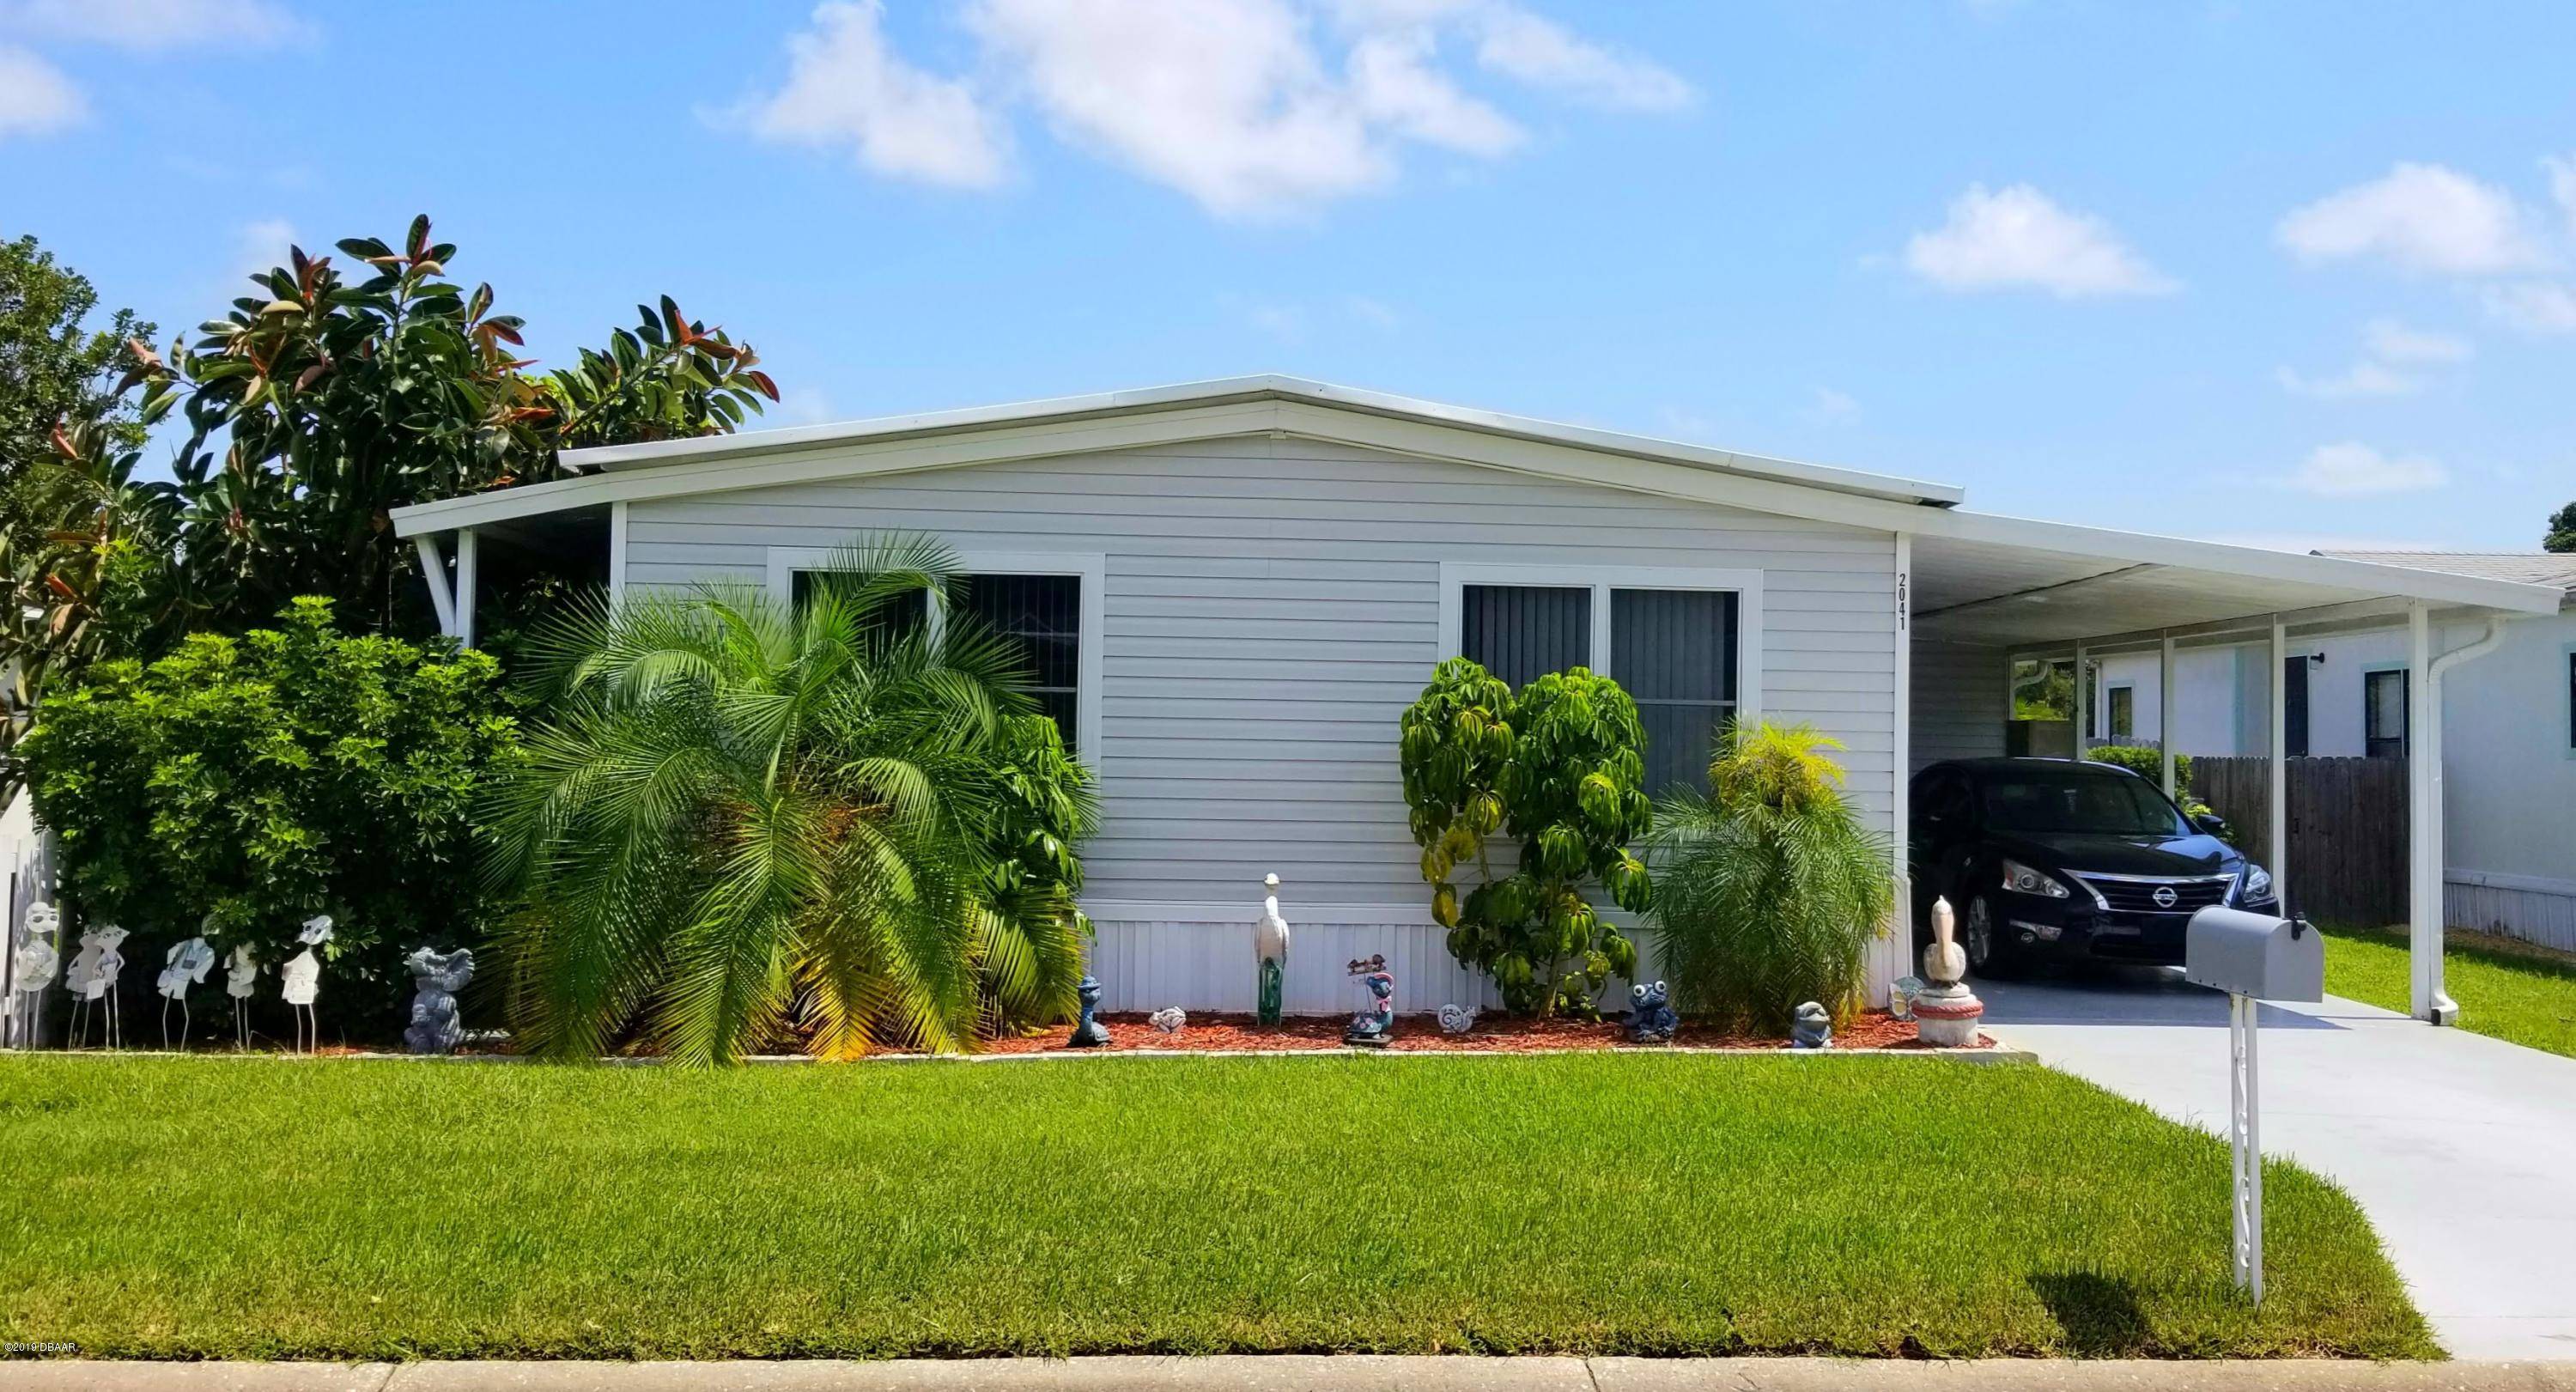 One of South Daytona 3 Bedroom Homes for Sale at 2041 Hickorywood Drive